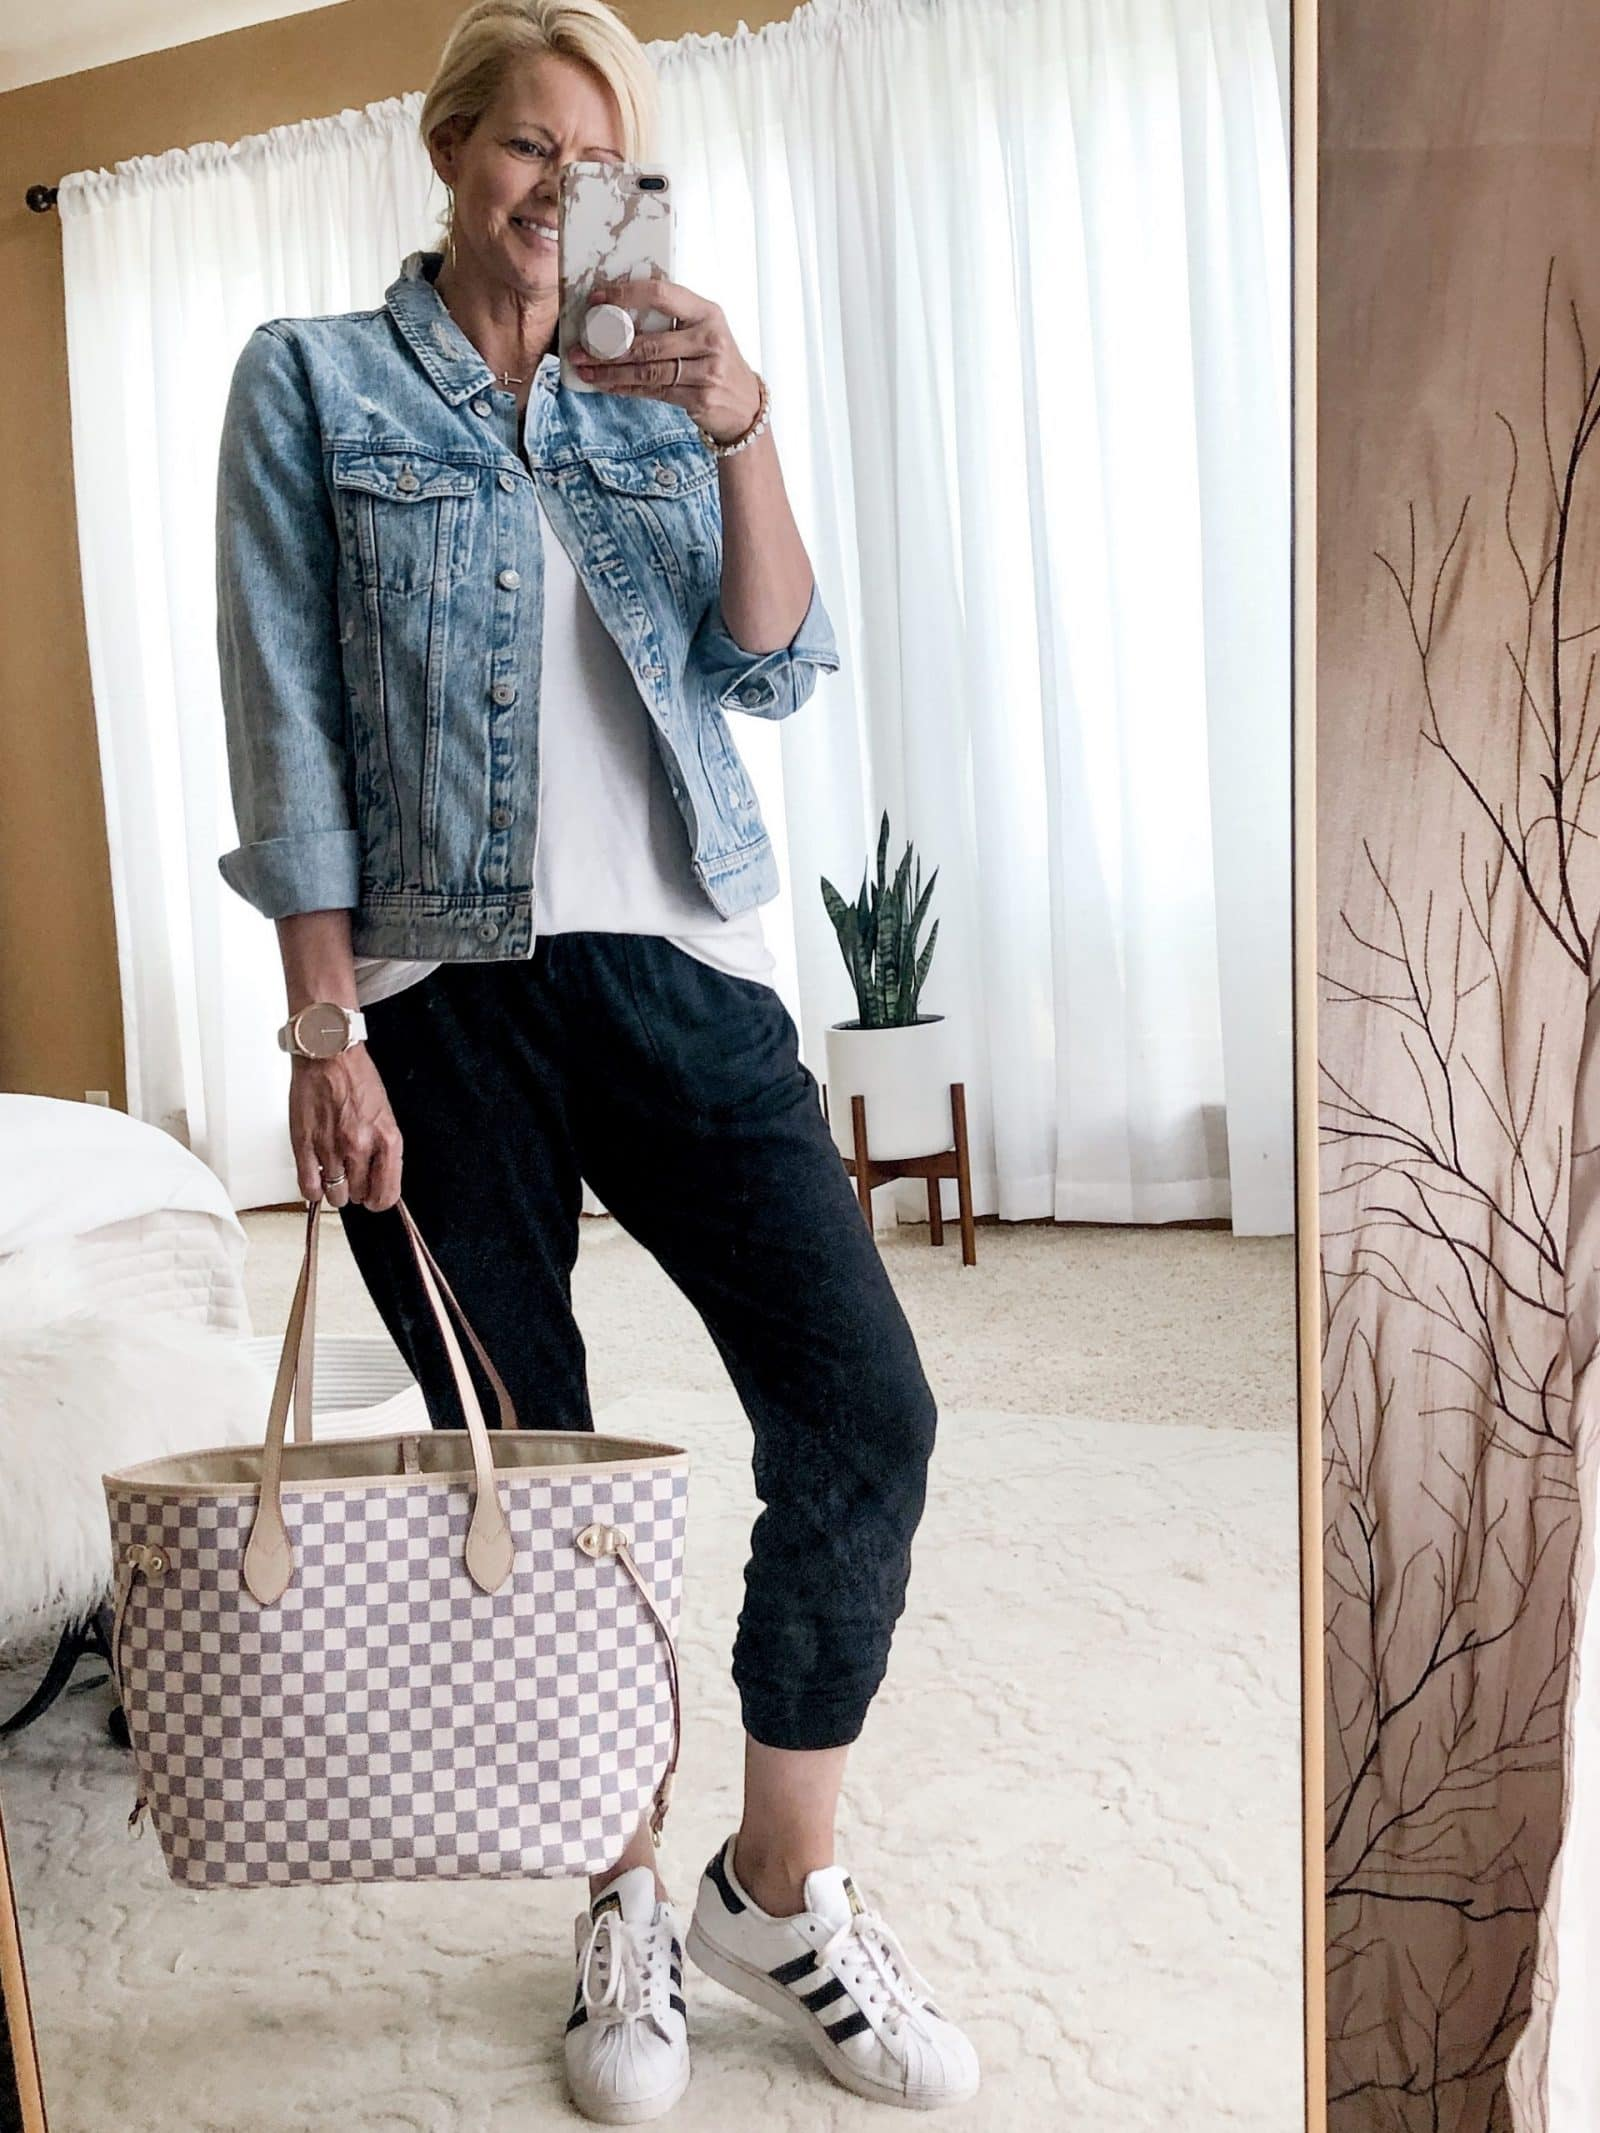 How to style joggers, outfit ideas for joggers.